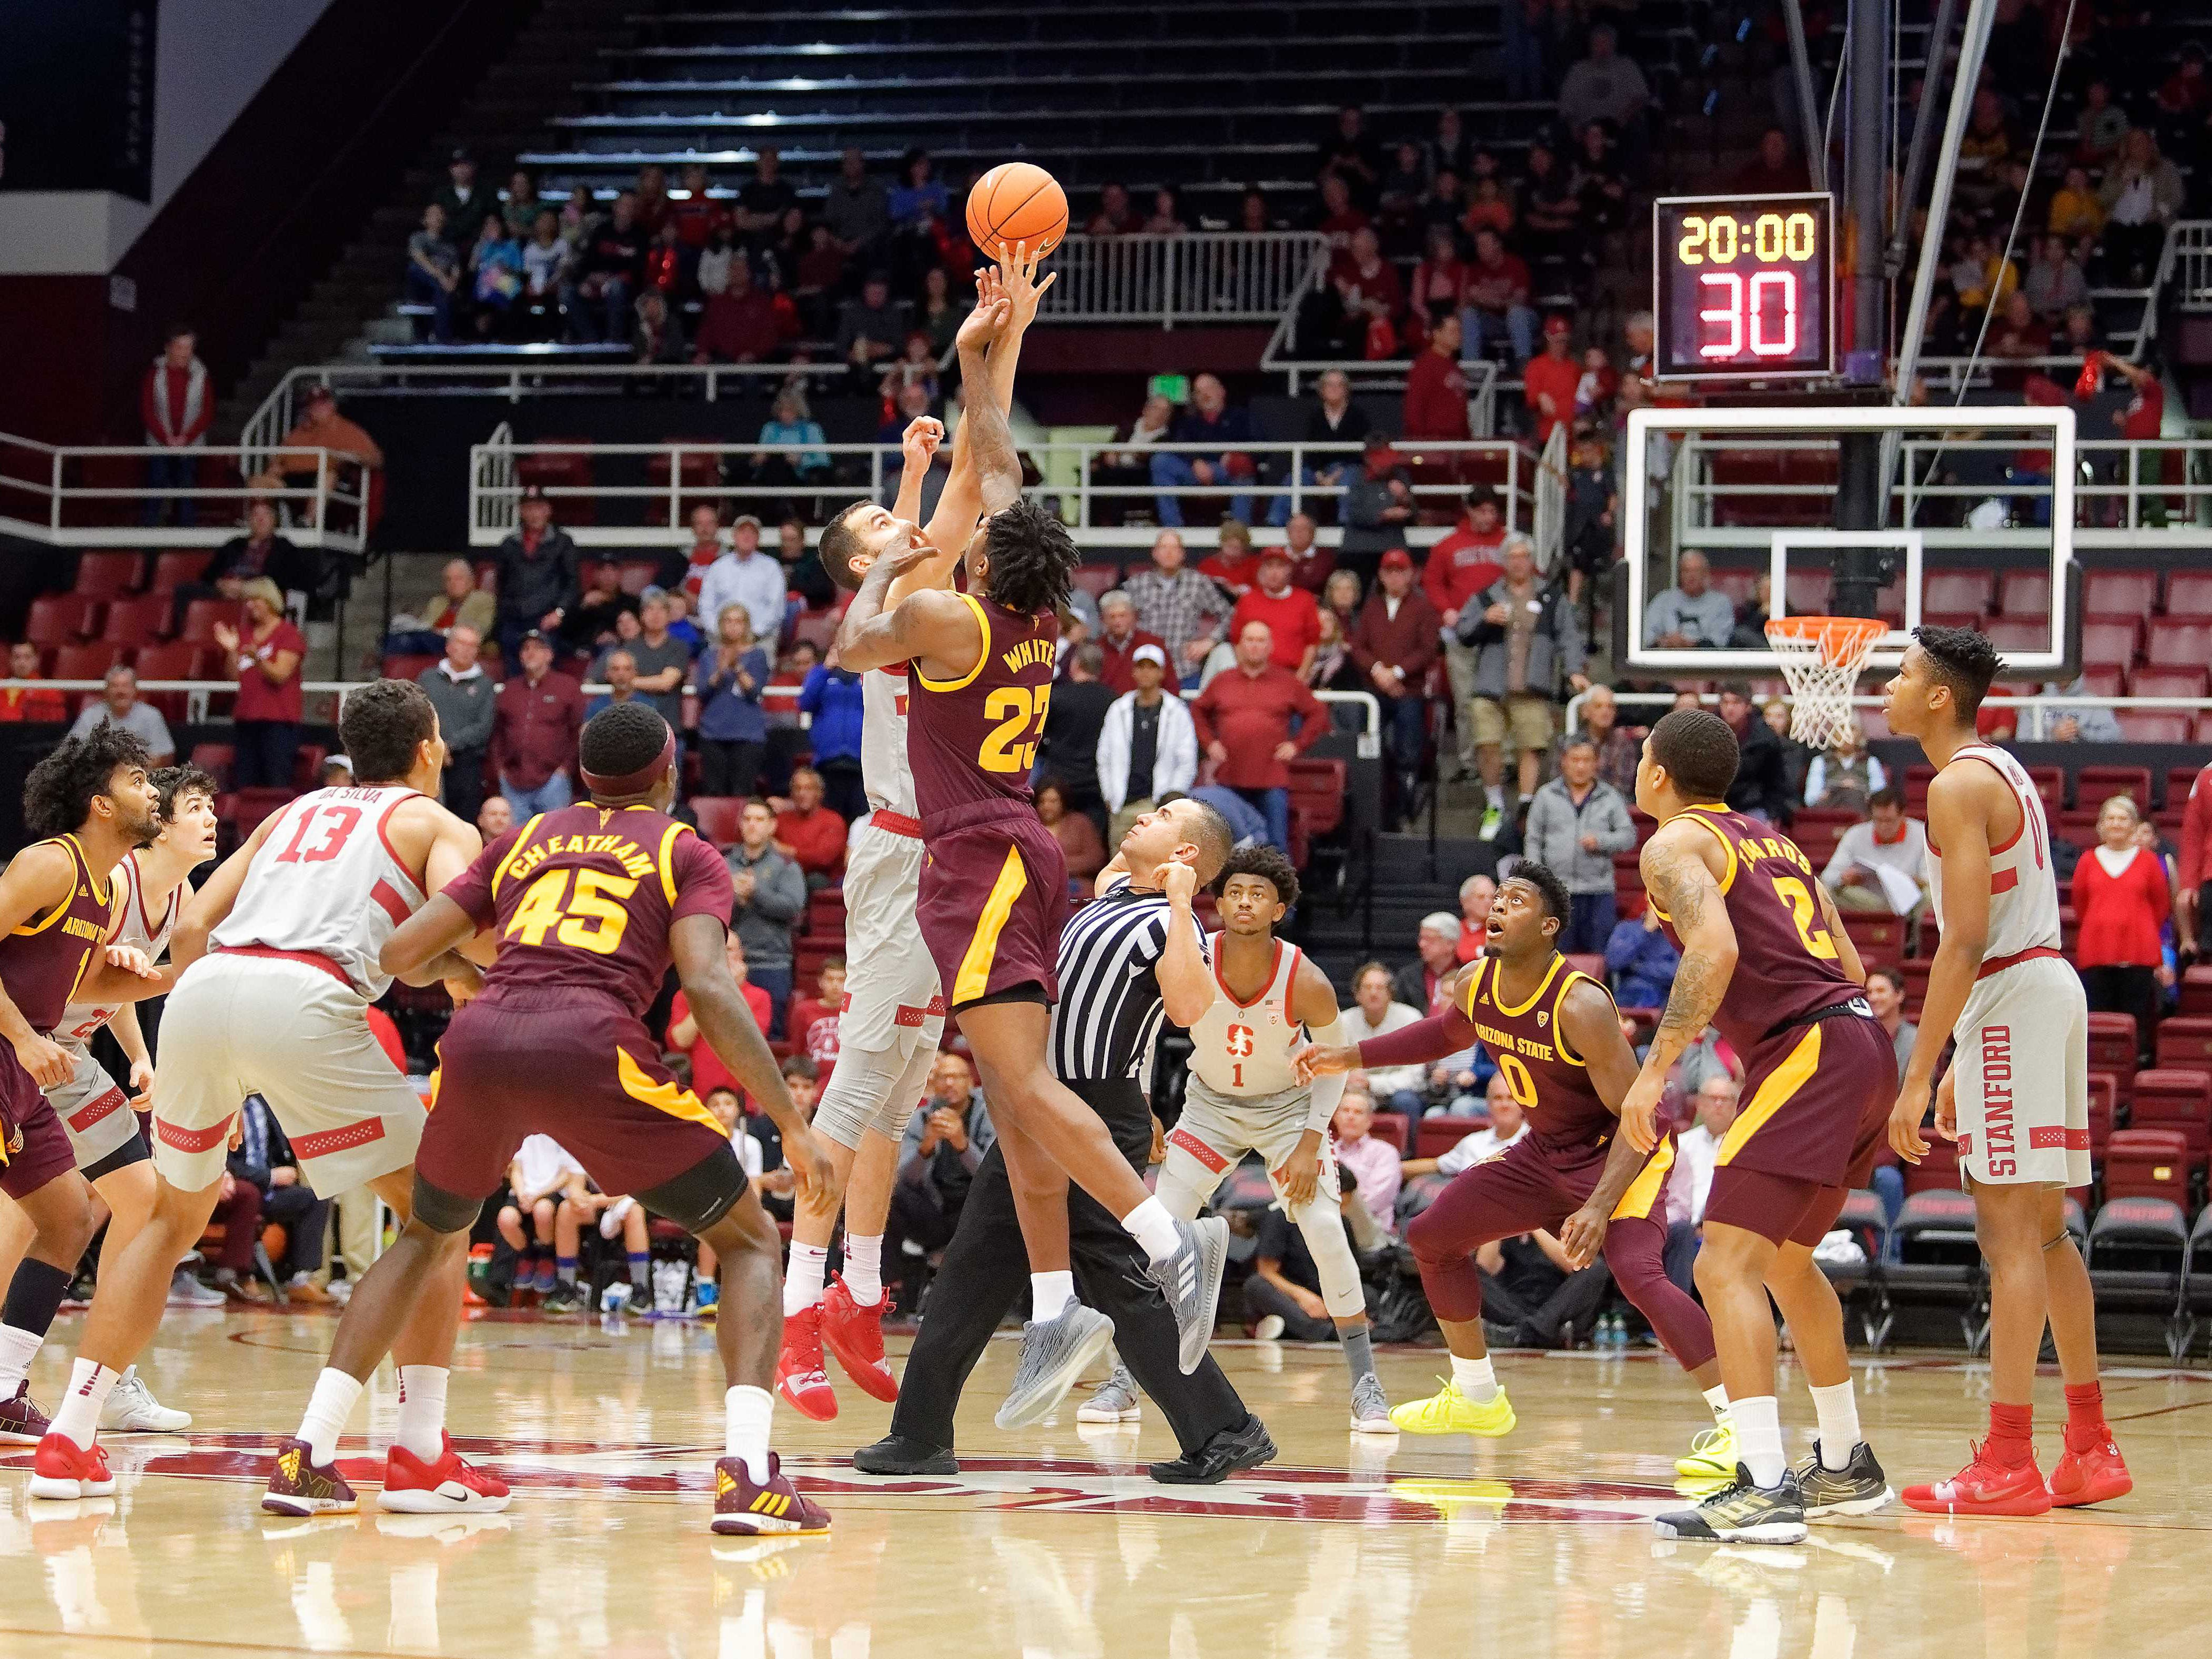 Jan 12, 2019; Stanford, CA, USA; Stanford Cardinal and Arizona State Sun Devils opening tip-off at Maples Pavilion. Mandatory Credit: Robert Edwards-USA TODAY Sports